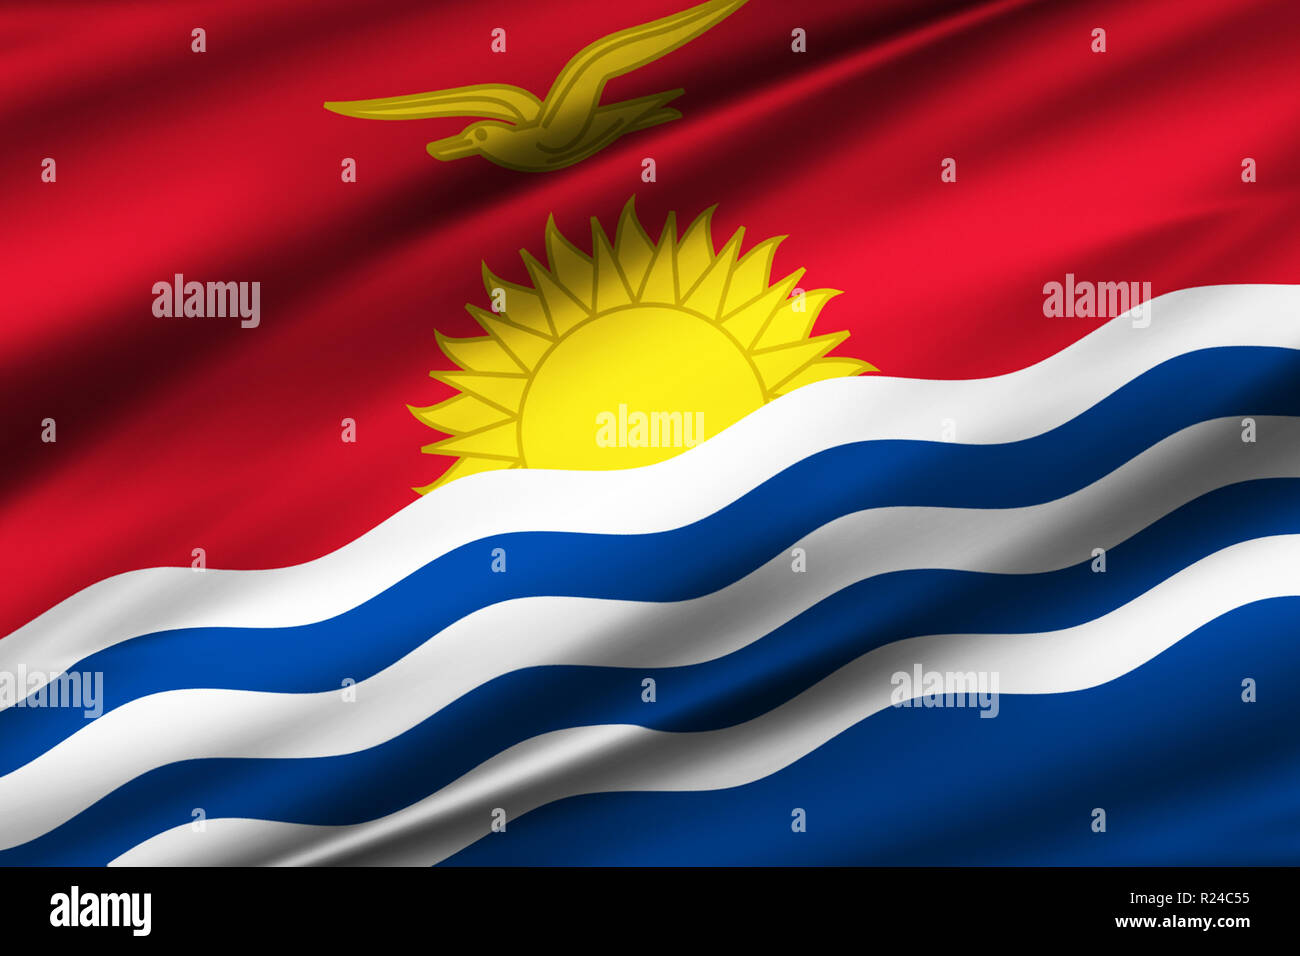 Kiribati 3D waving flag illustration. Texture can be used as background. - Stock Image